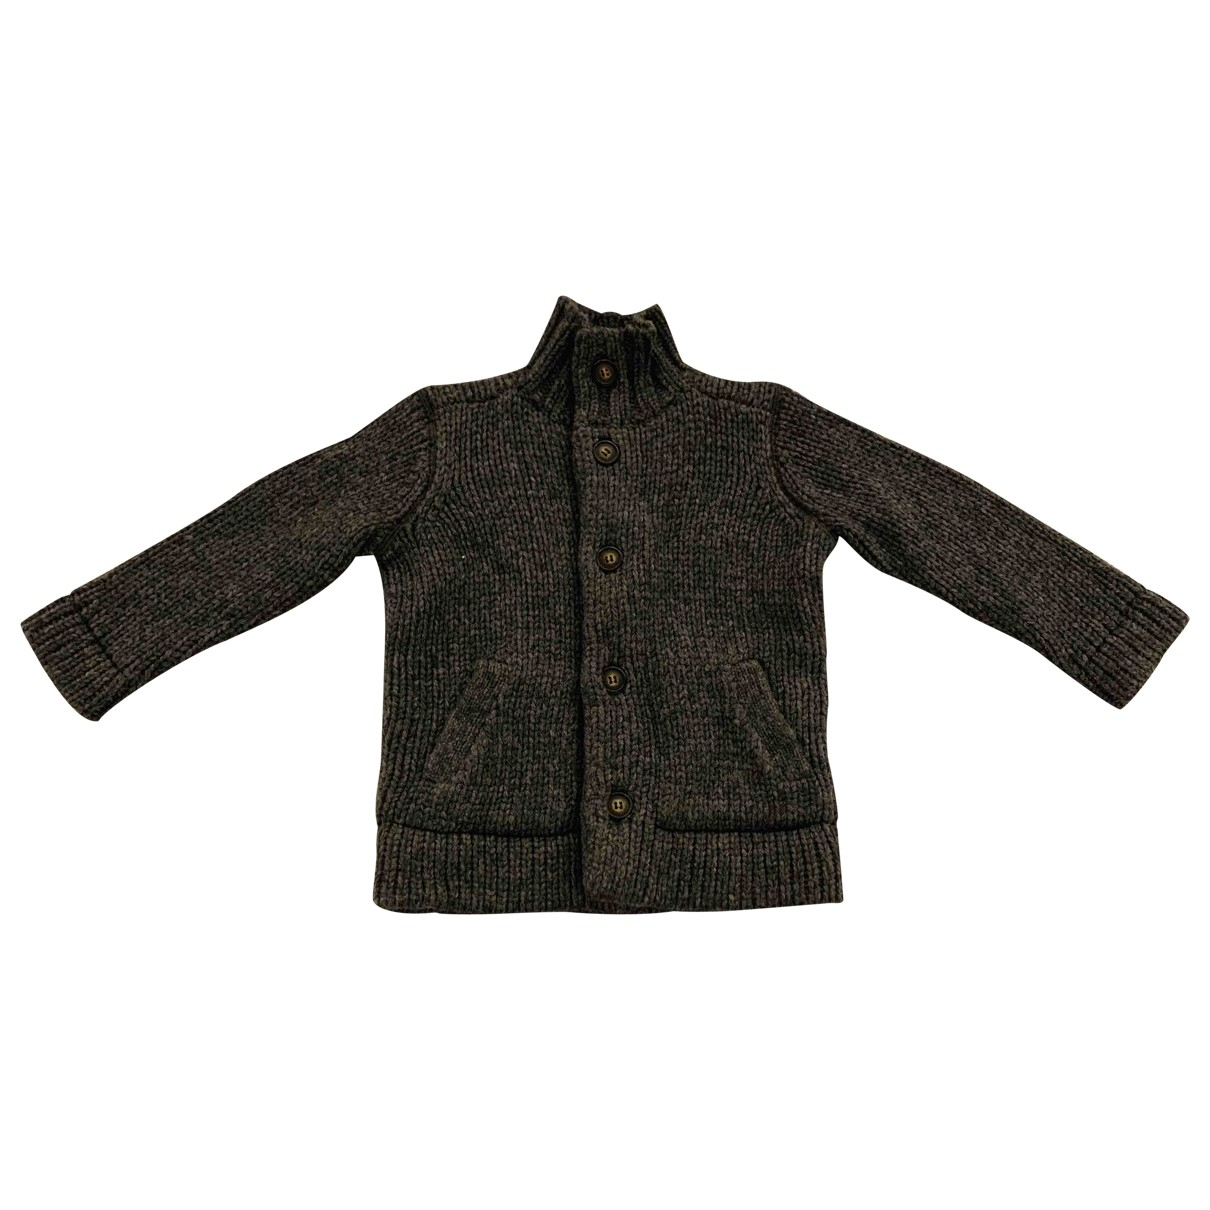 Bonpoint \N Wool jacket & coat for Kids 3 years - up to 98cm FR